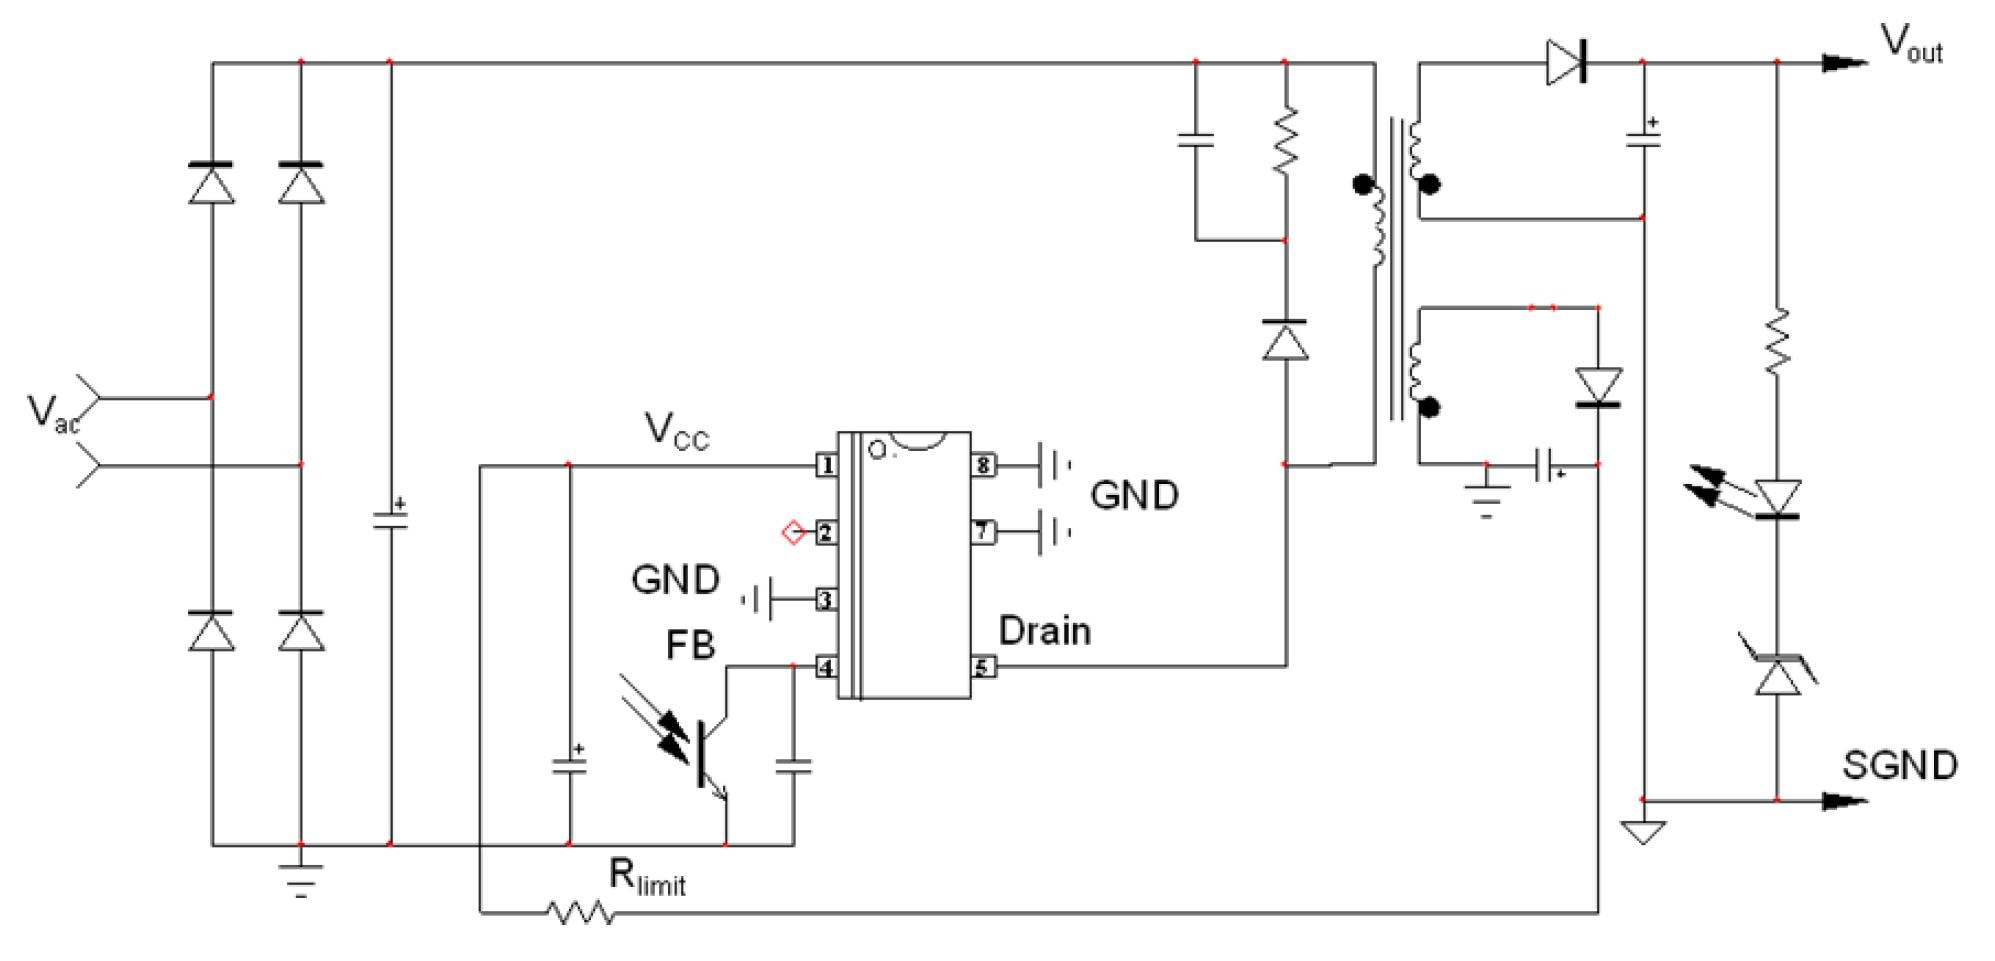 NCP1072: High Voltage Switching Regulator for Offline SMPS